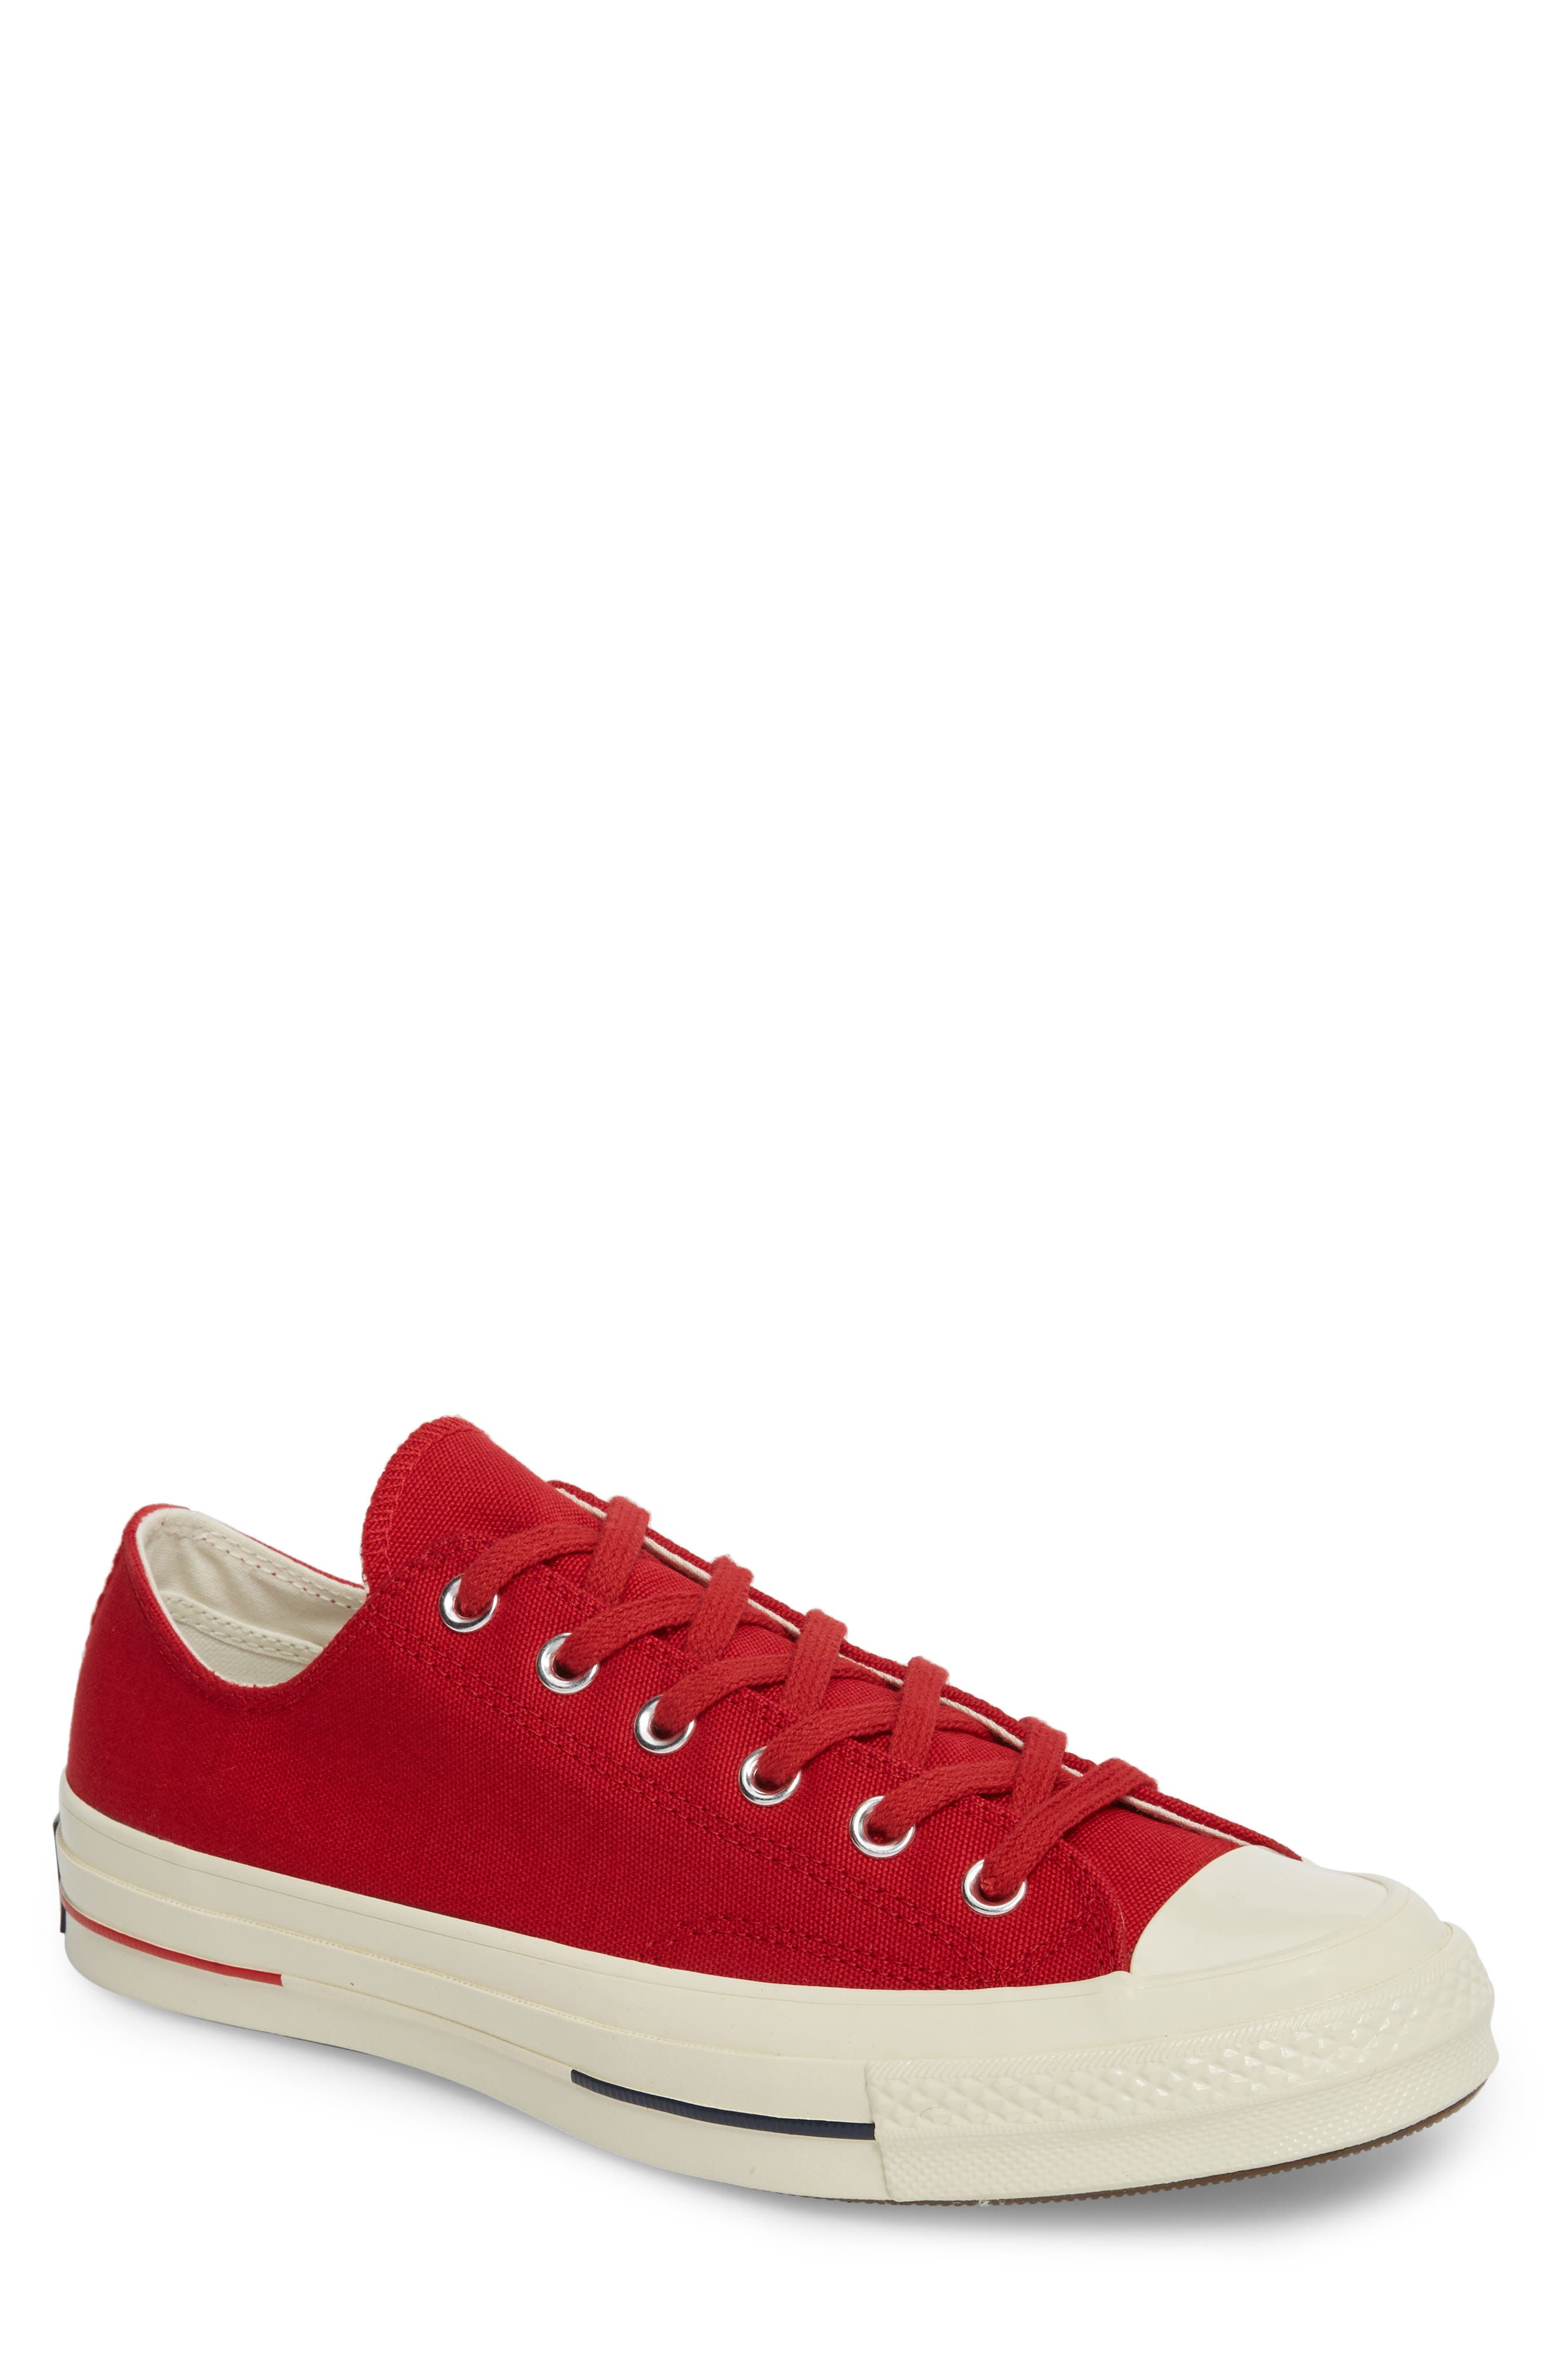 Chuck Taylor<sup>®</sup> All Star<sup>®</sup> '70s Heritage Low Top Sneaker,                         Main,                         color, Gym Red